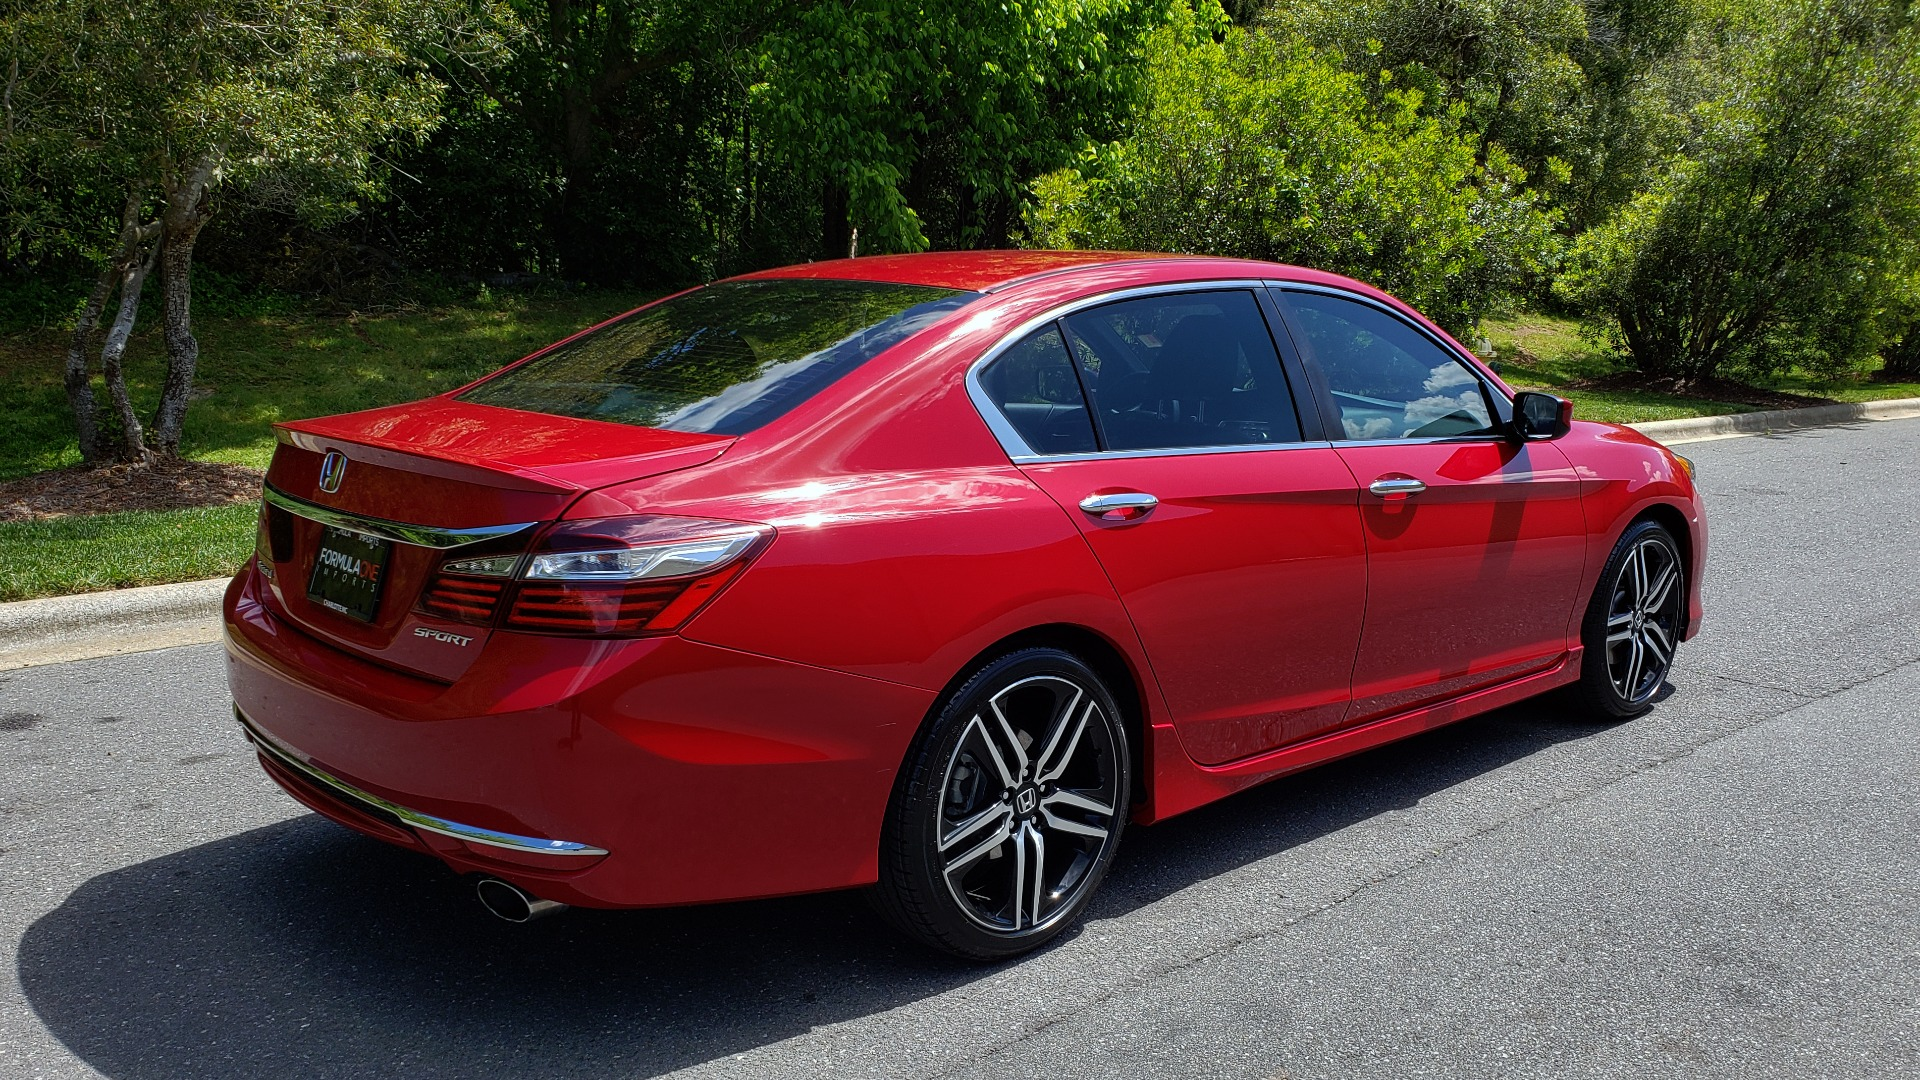 Used 2016 Honda ACCORD SEDAN SPORT / 4-CYL / CVT TRANS / SPOILER / 19IN ALLOY WHEELS for sale Sold at Formula Imports in Charlotte NC 28227 6